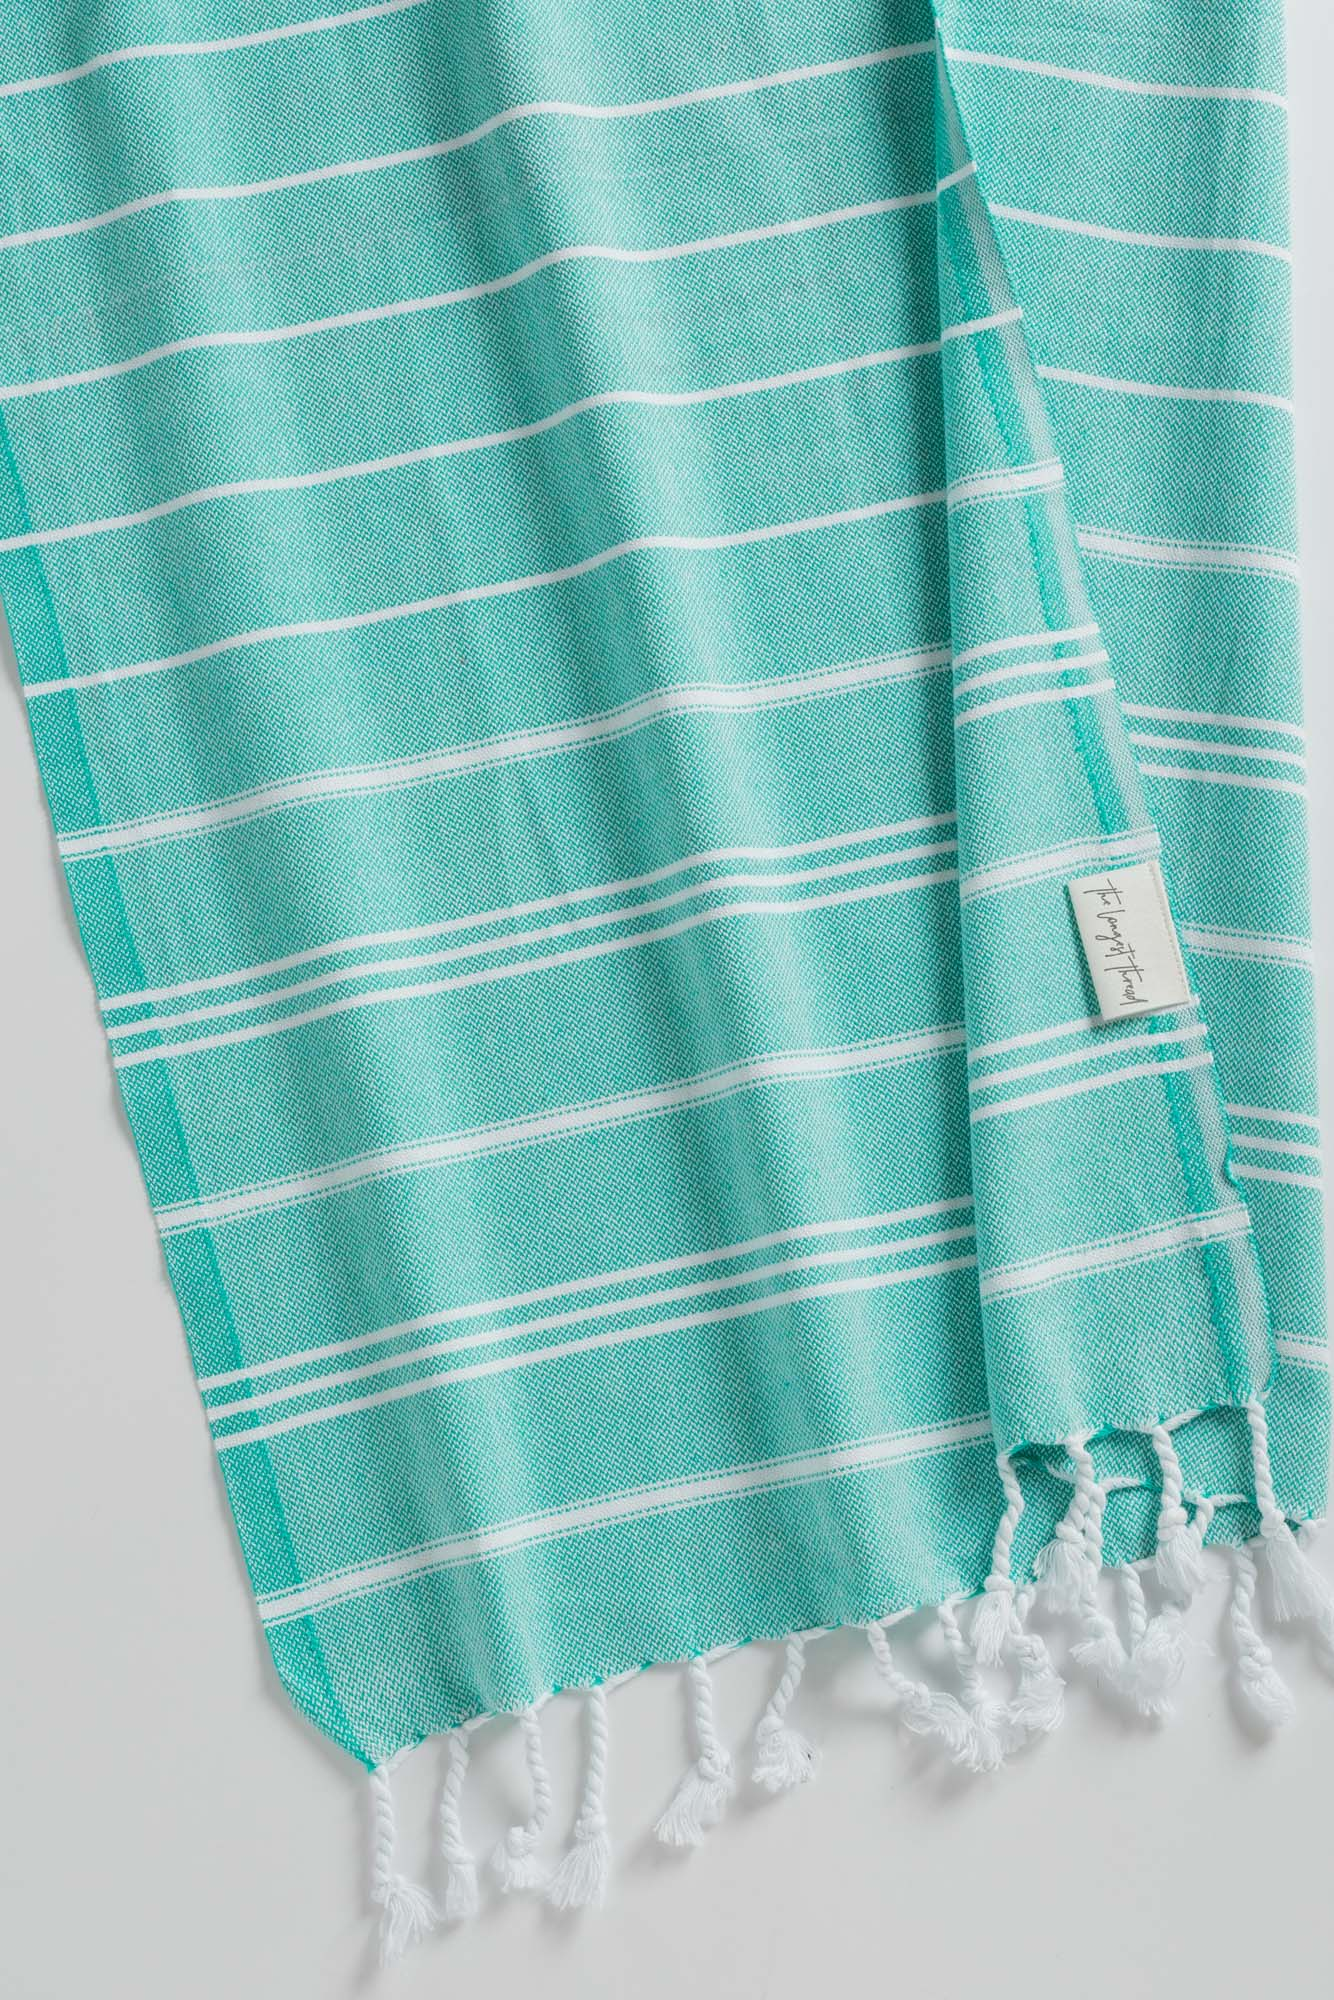 Basic XS Seafoam Turkish Hand Towel